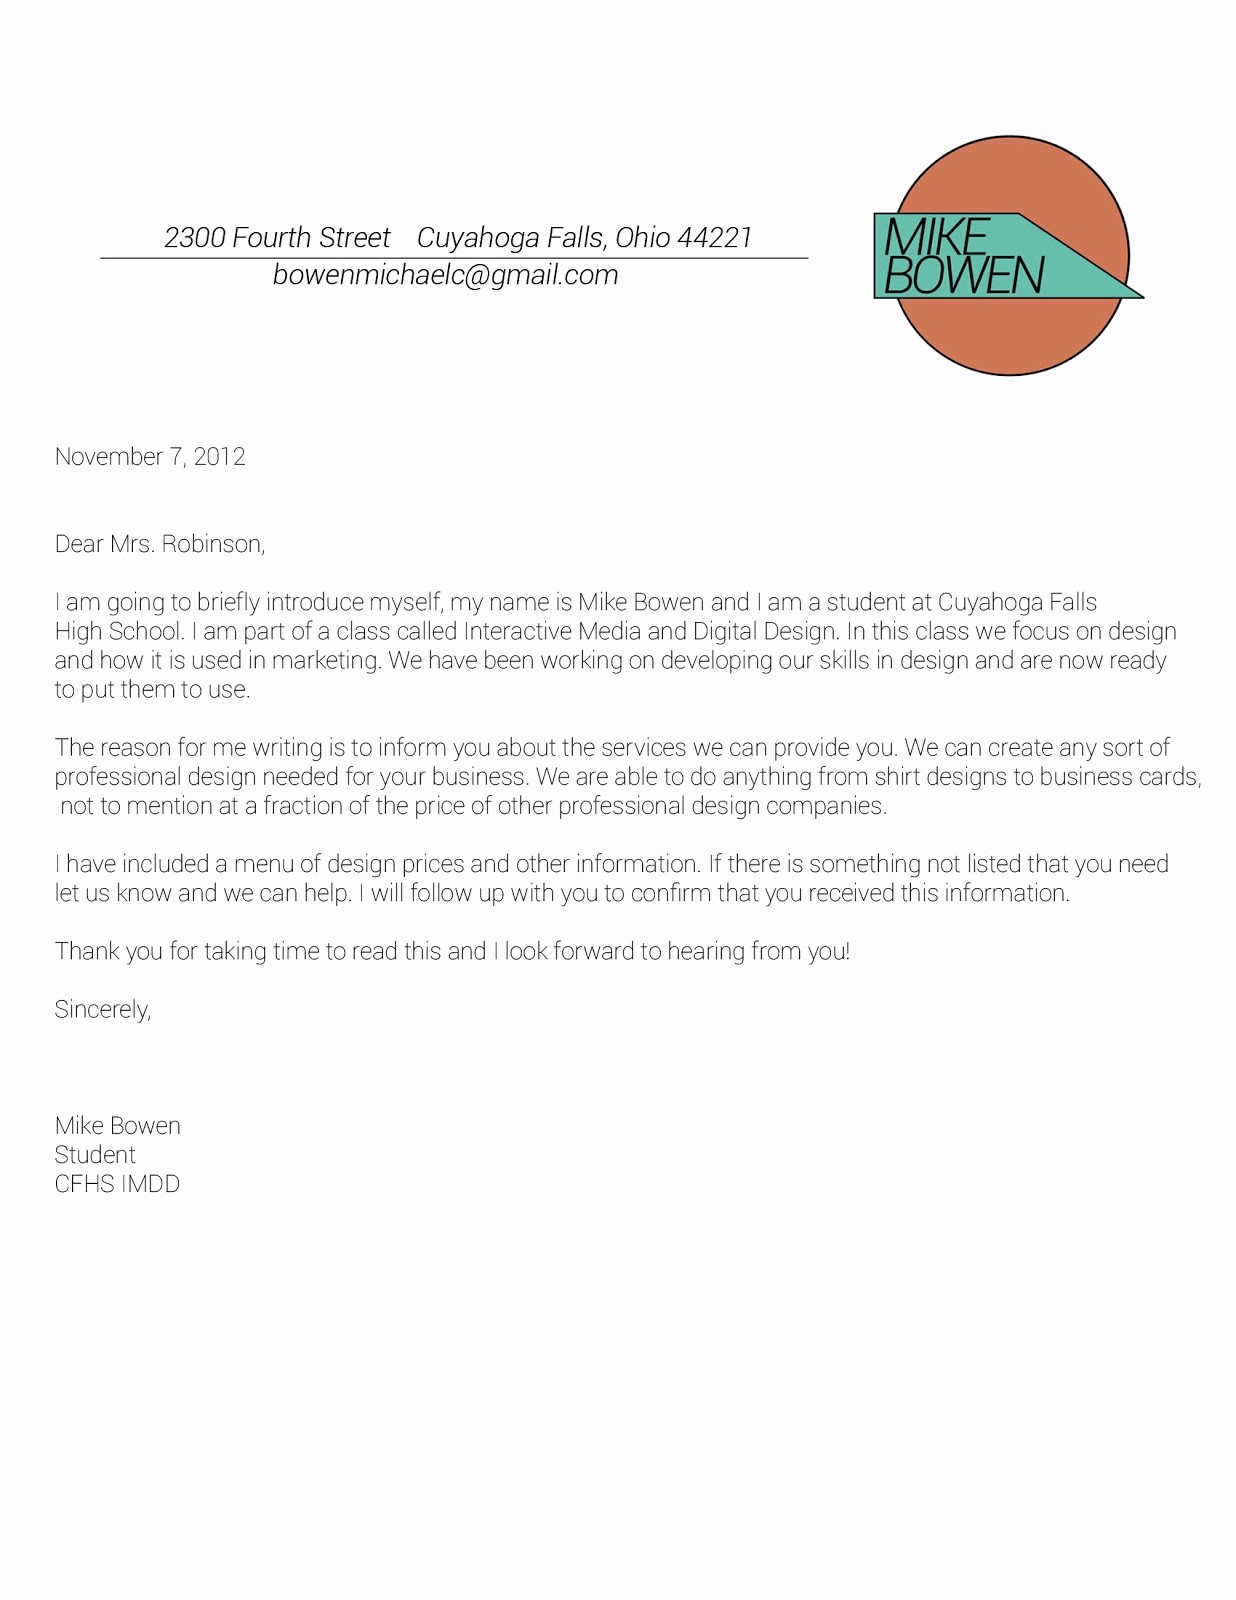 Sample Business Letterhead with Logo Awesome Grizz Marketing